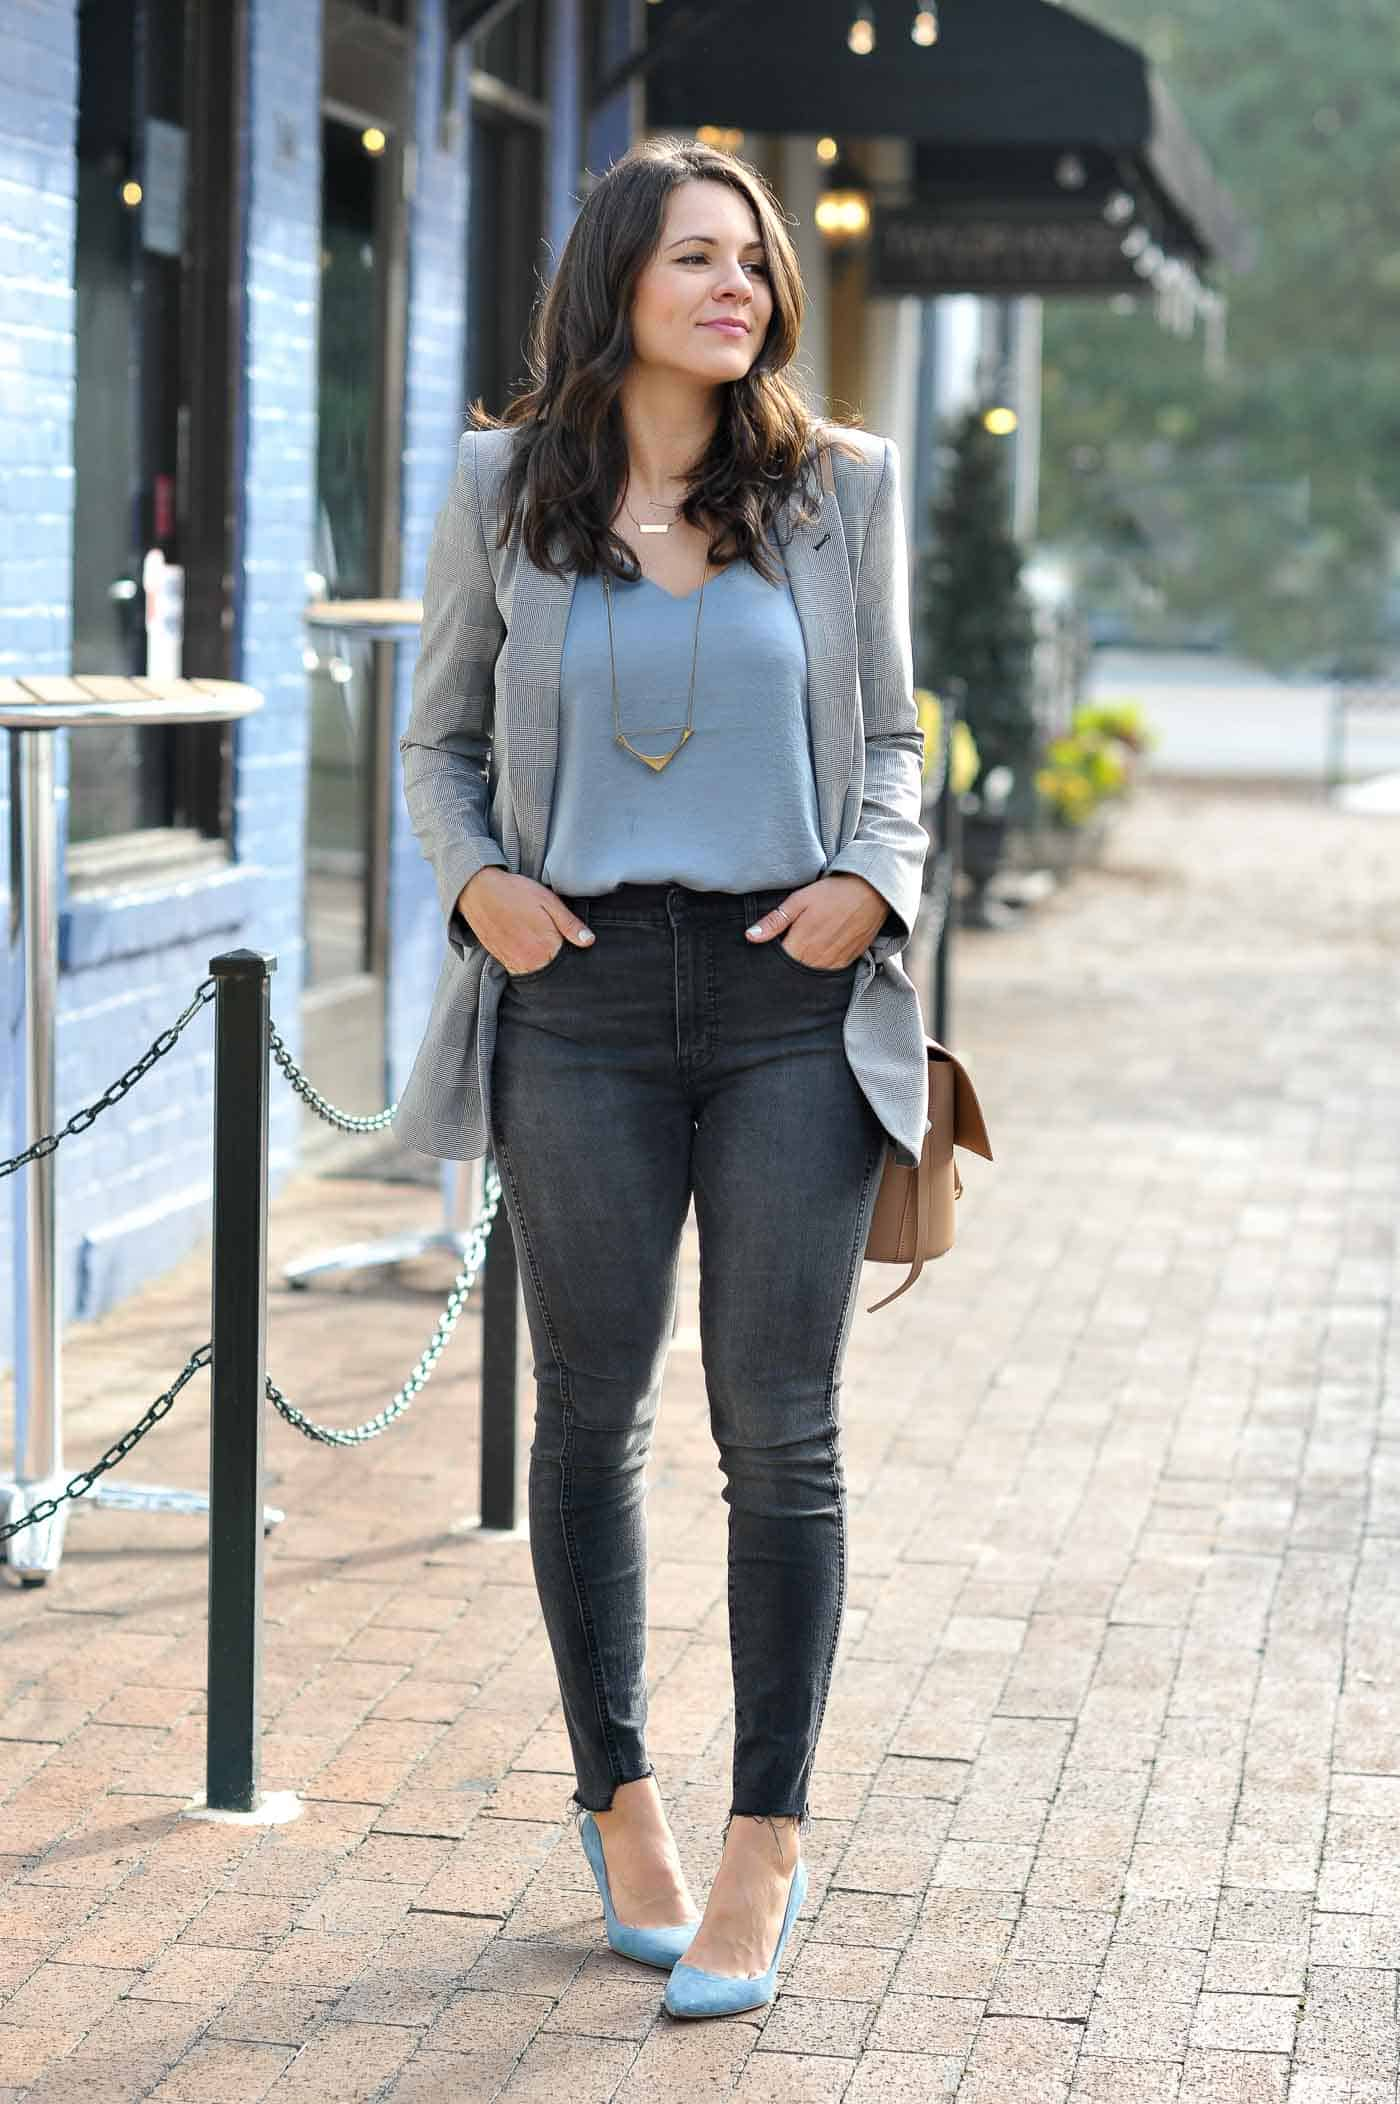 The Perfect Fall Office Outfit Ideas - My Style Vita